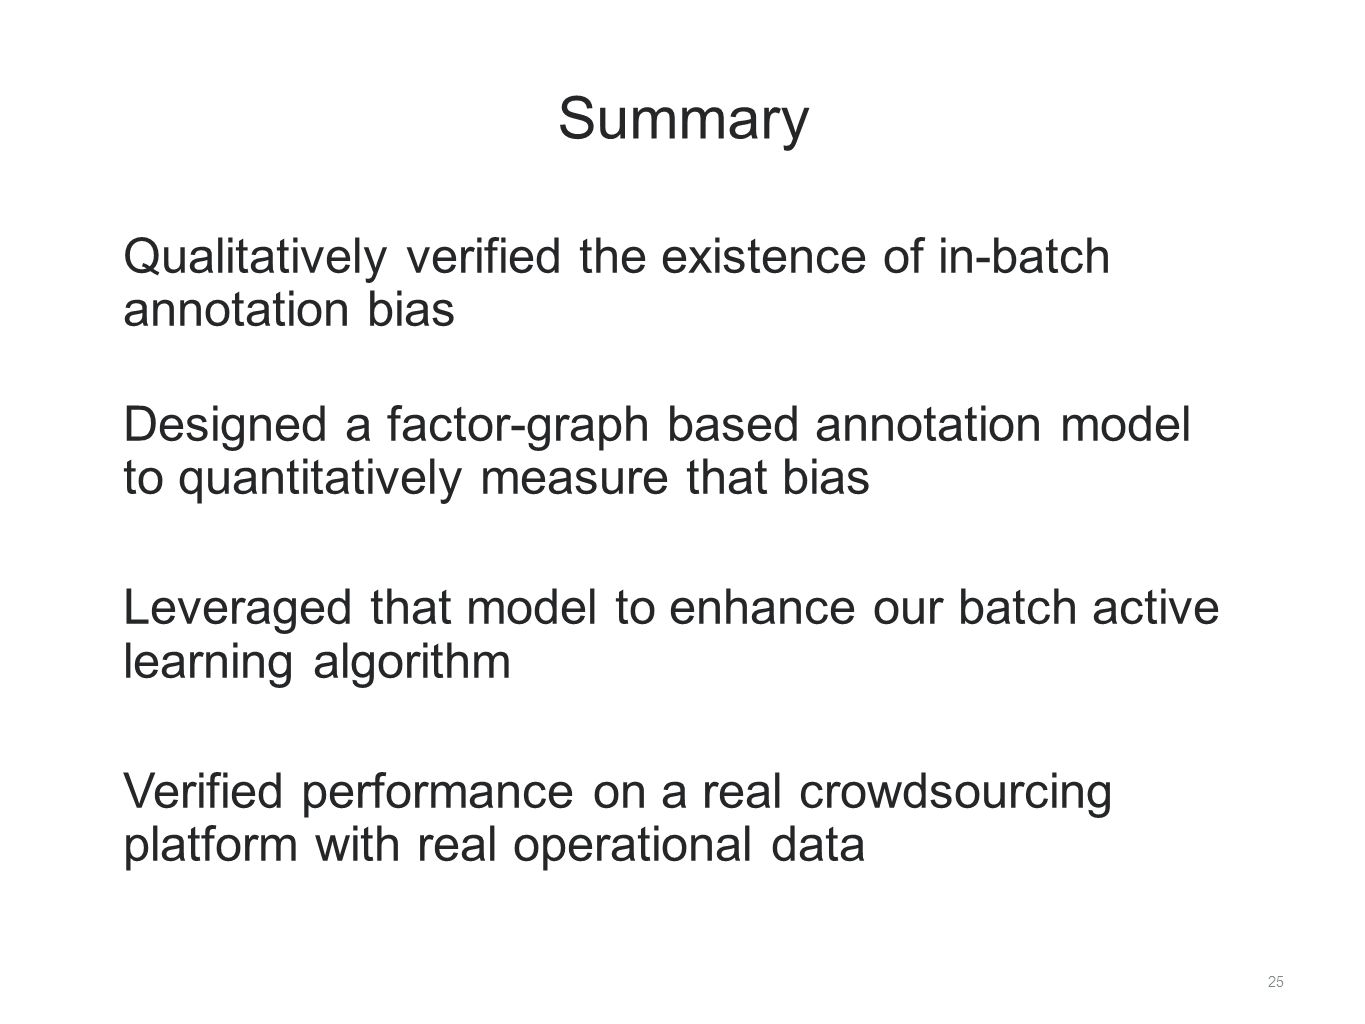 25 Summary ​ Qualitatively verified the existence of in-batch annotation bias Designed a factor-graph based annotation model to quantitatively measure that bias Leveraged that model to enhance our batch active learning algorithm Verified performance on a real crowdsourcing platform with real operational data